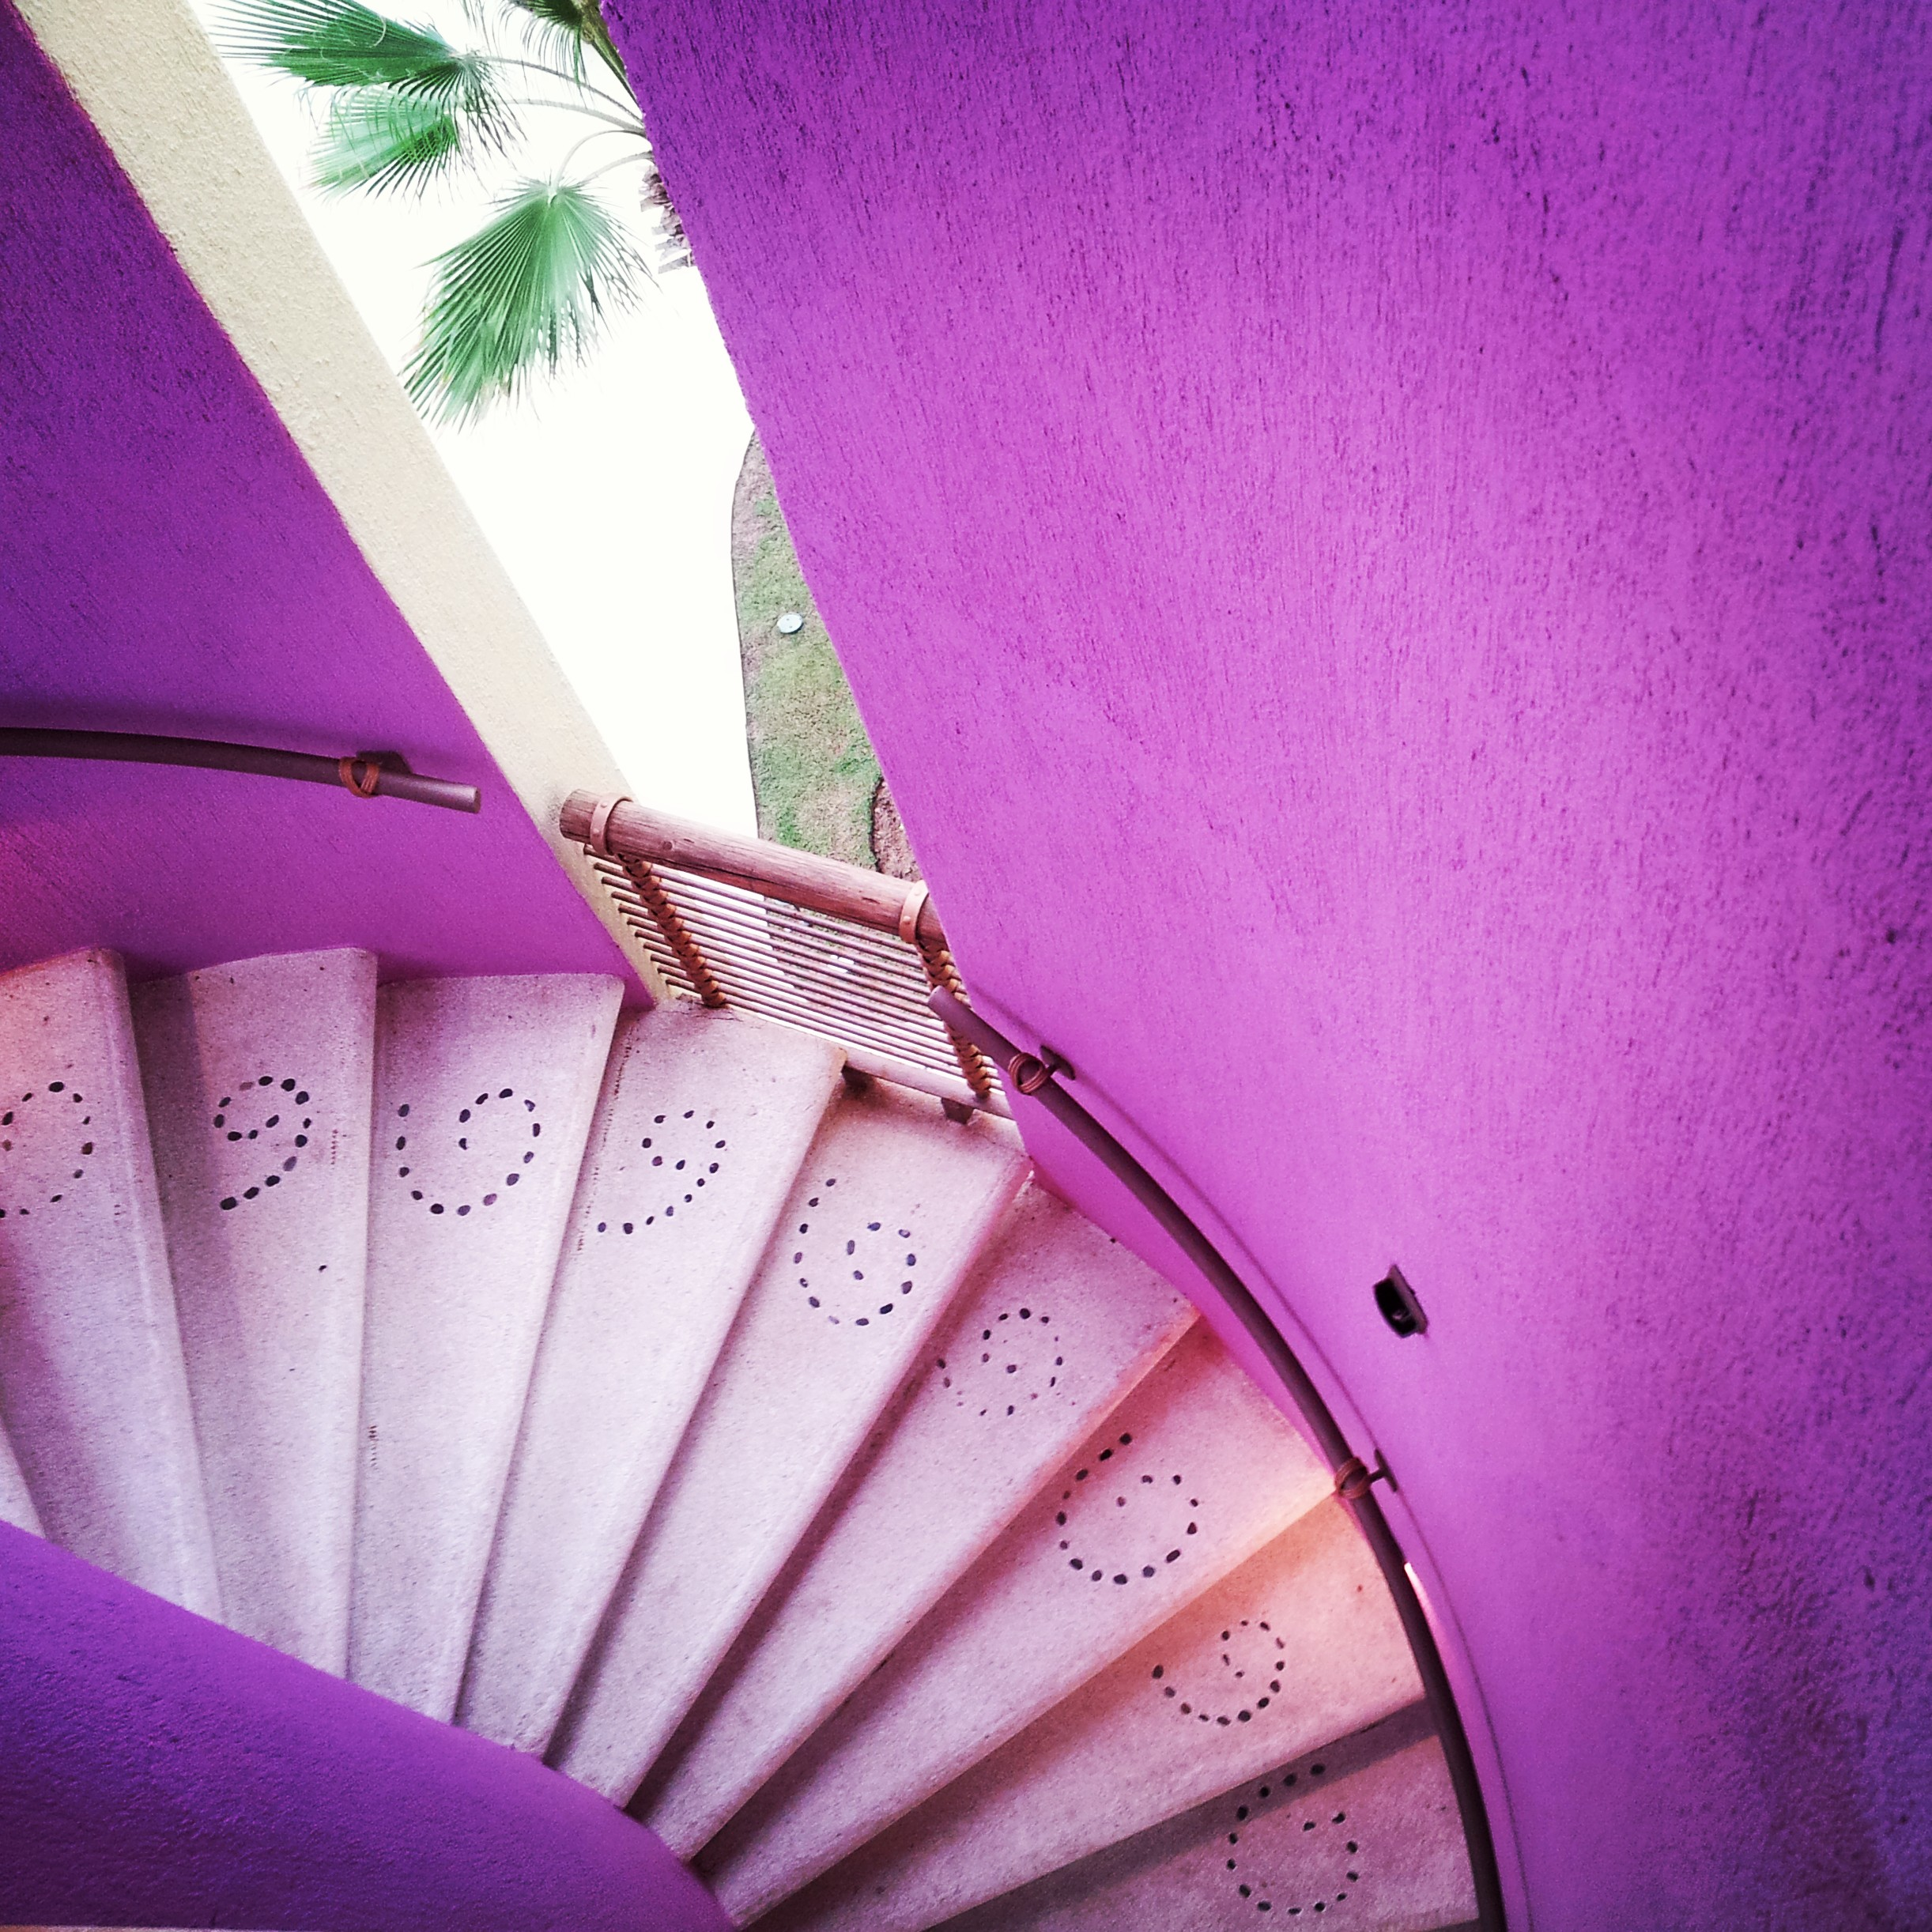 Color me magenta! This was just a random staircase I found tucked into a corner of the resort.